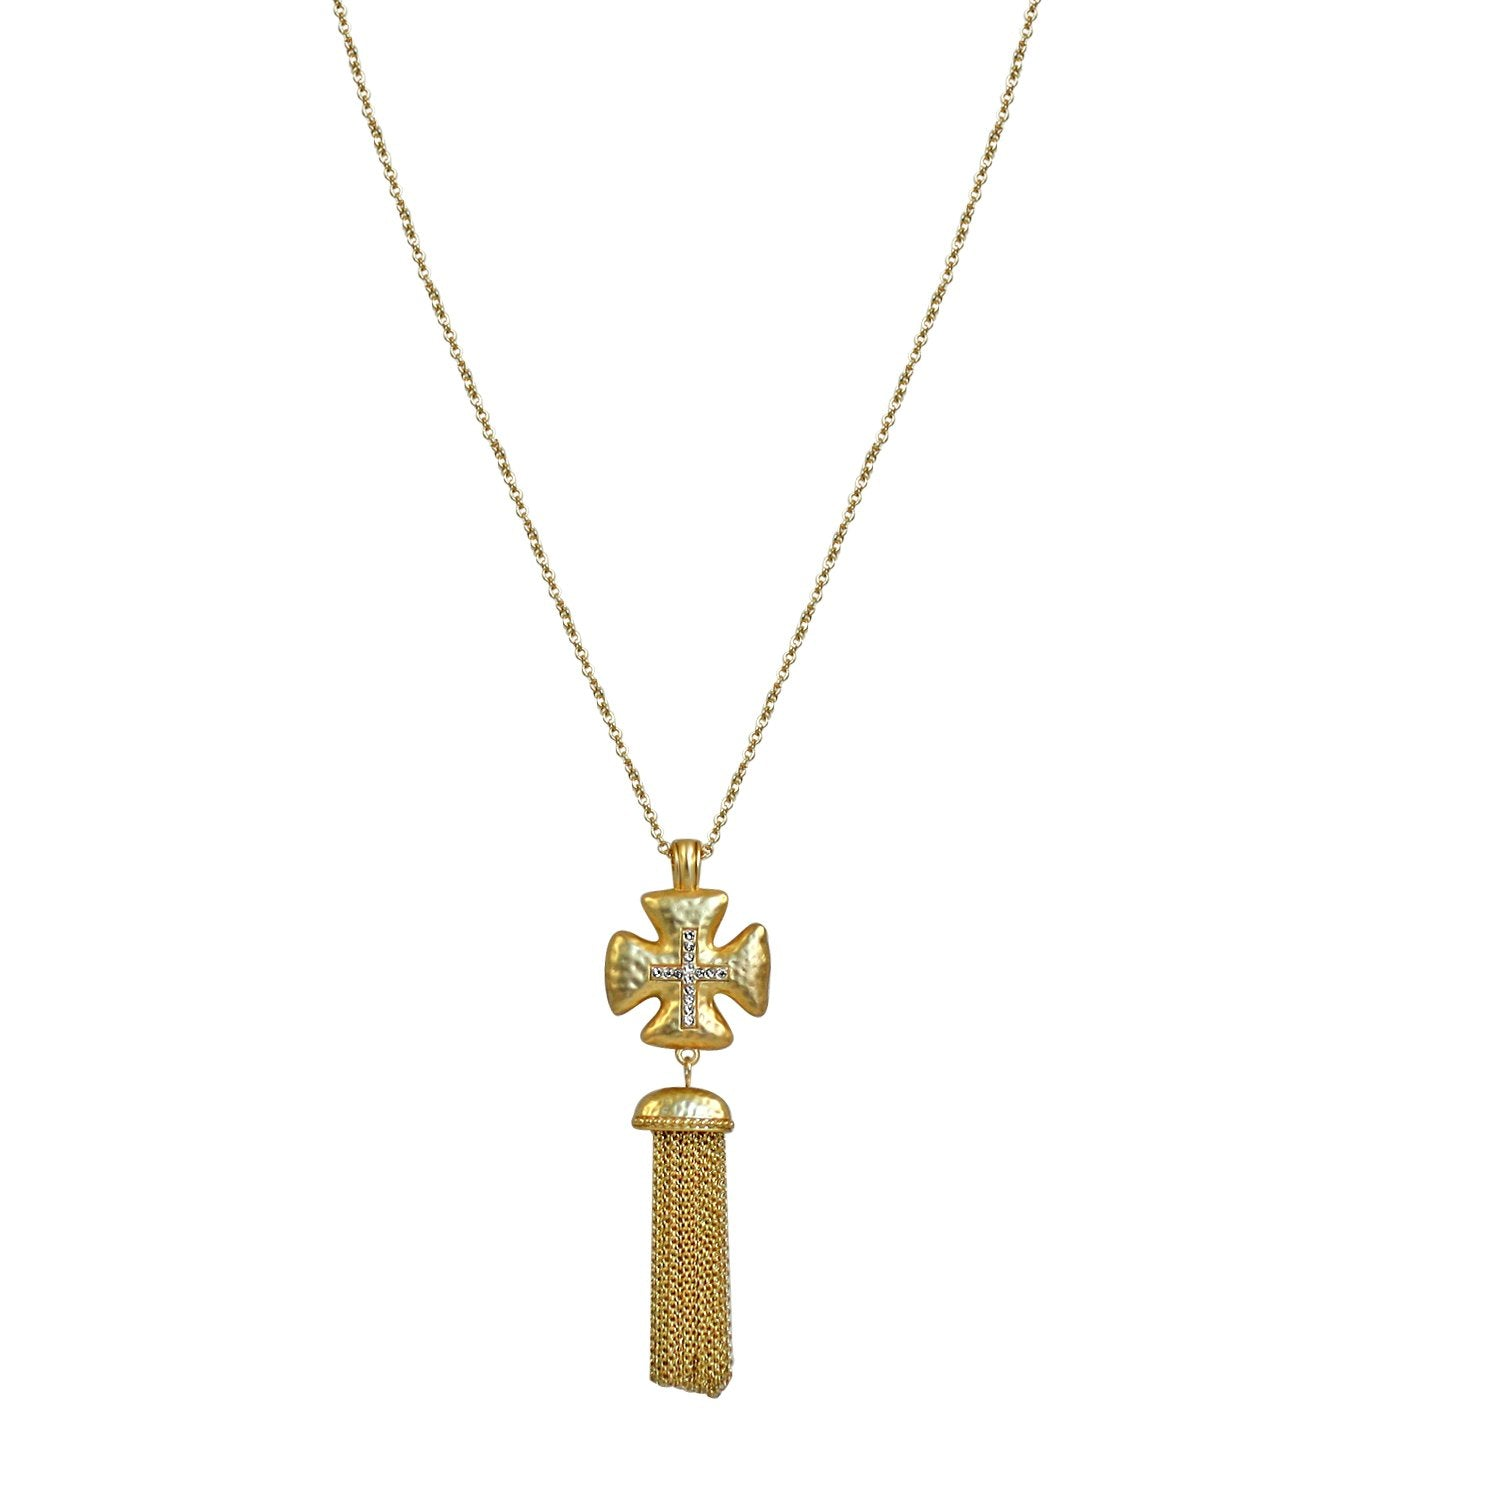 Vintage Tassel Gold Cross Pendant Necklace Micro Paved With Cubic Zirconia on an  Link Chain 500P3257